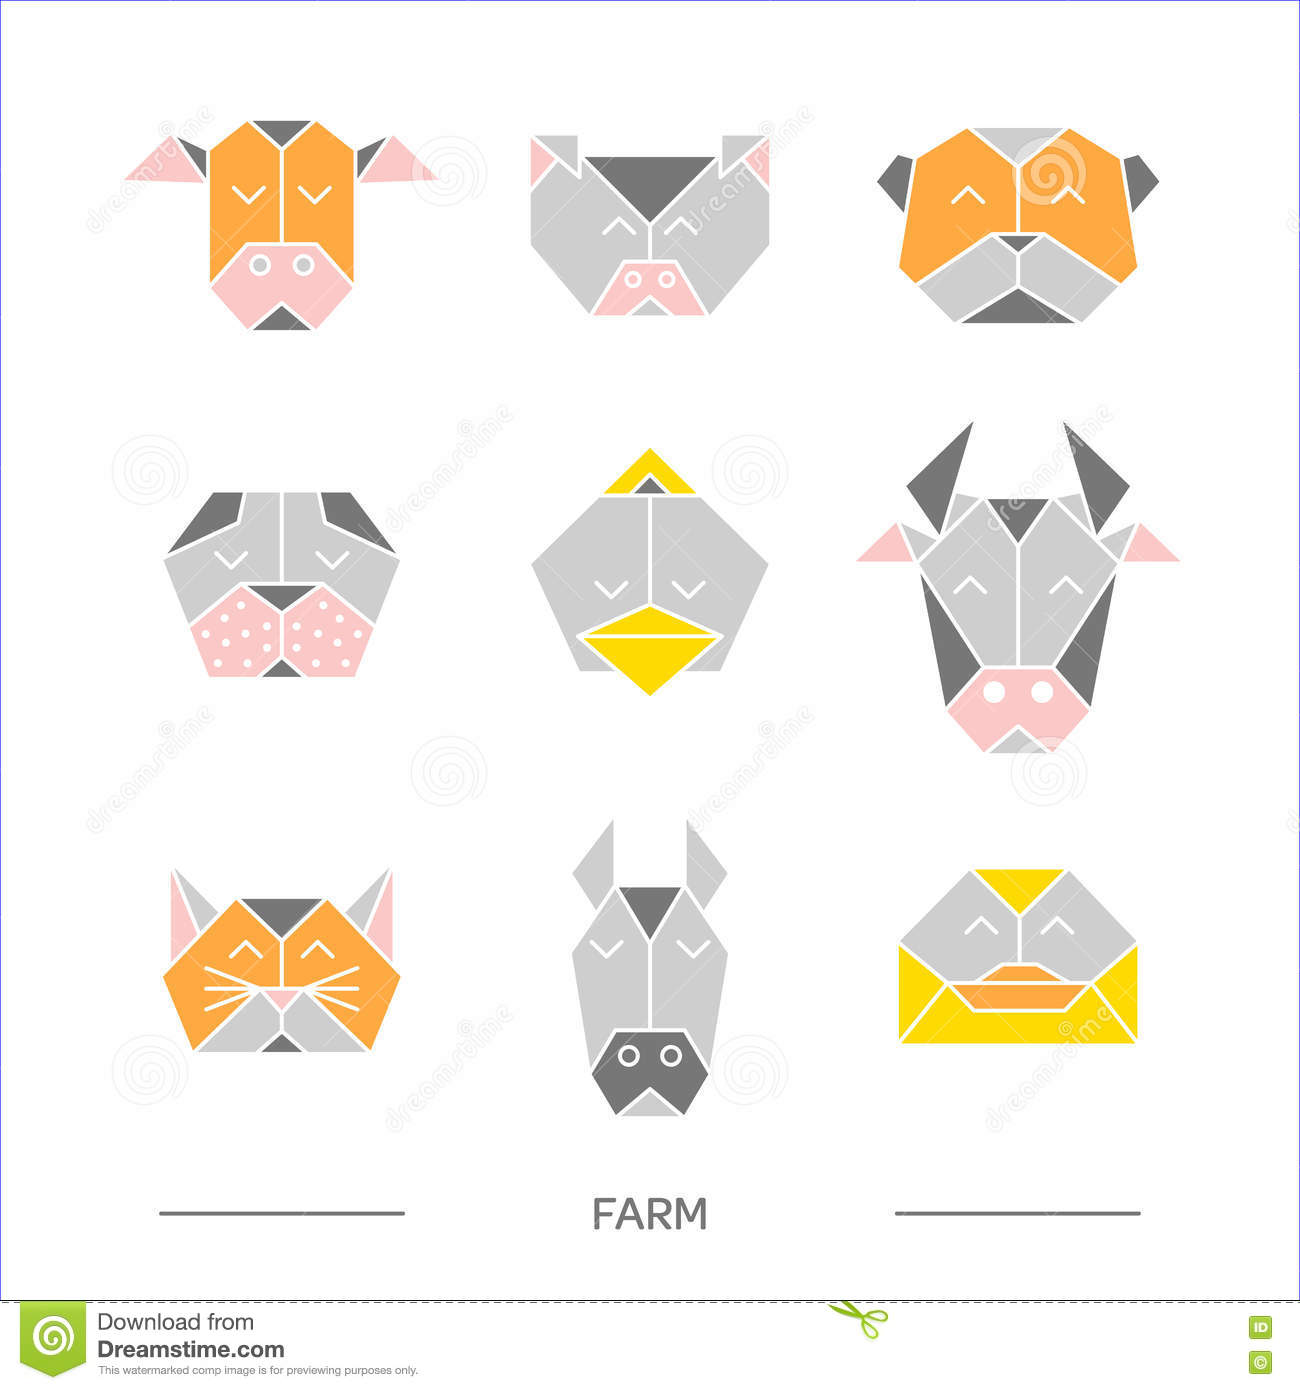 Origami 10 De La Ferme D Animaux Illustration De Vecteur